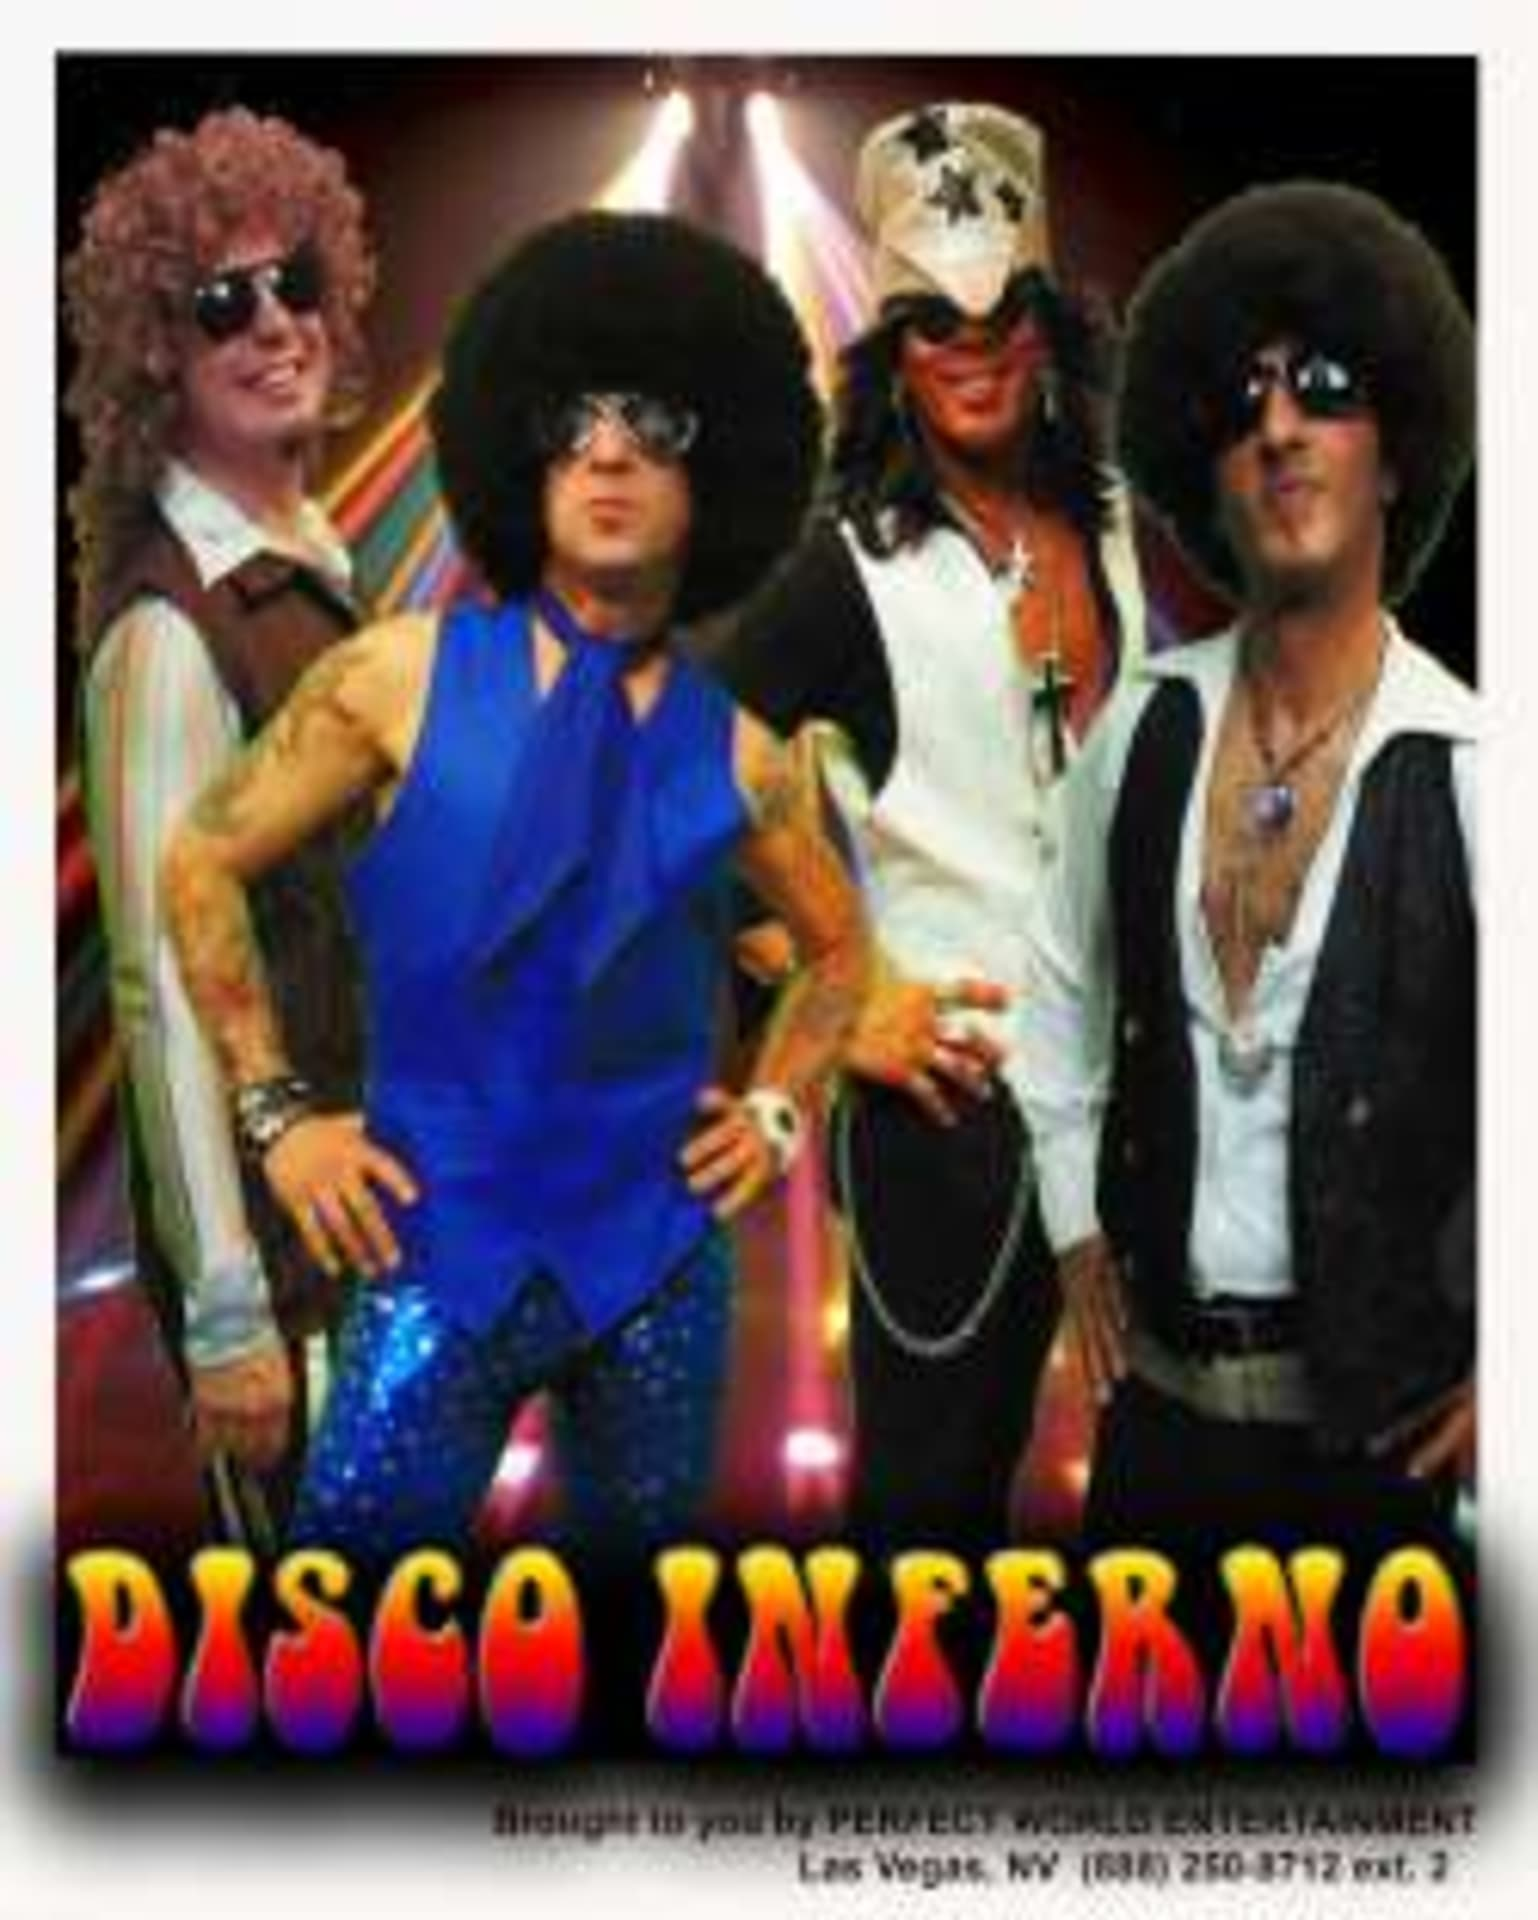 Disco Inferno Saturday April 27th